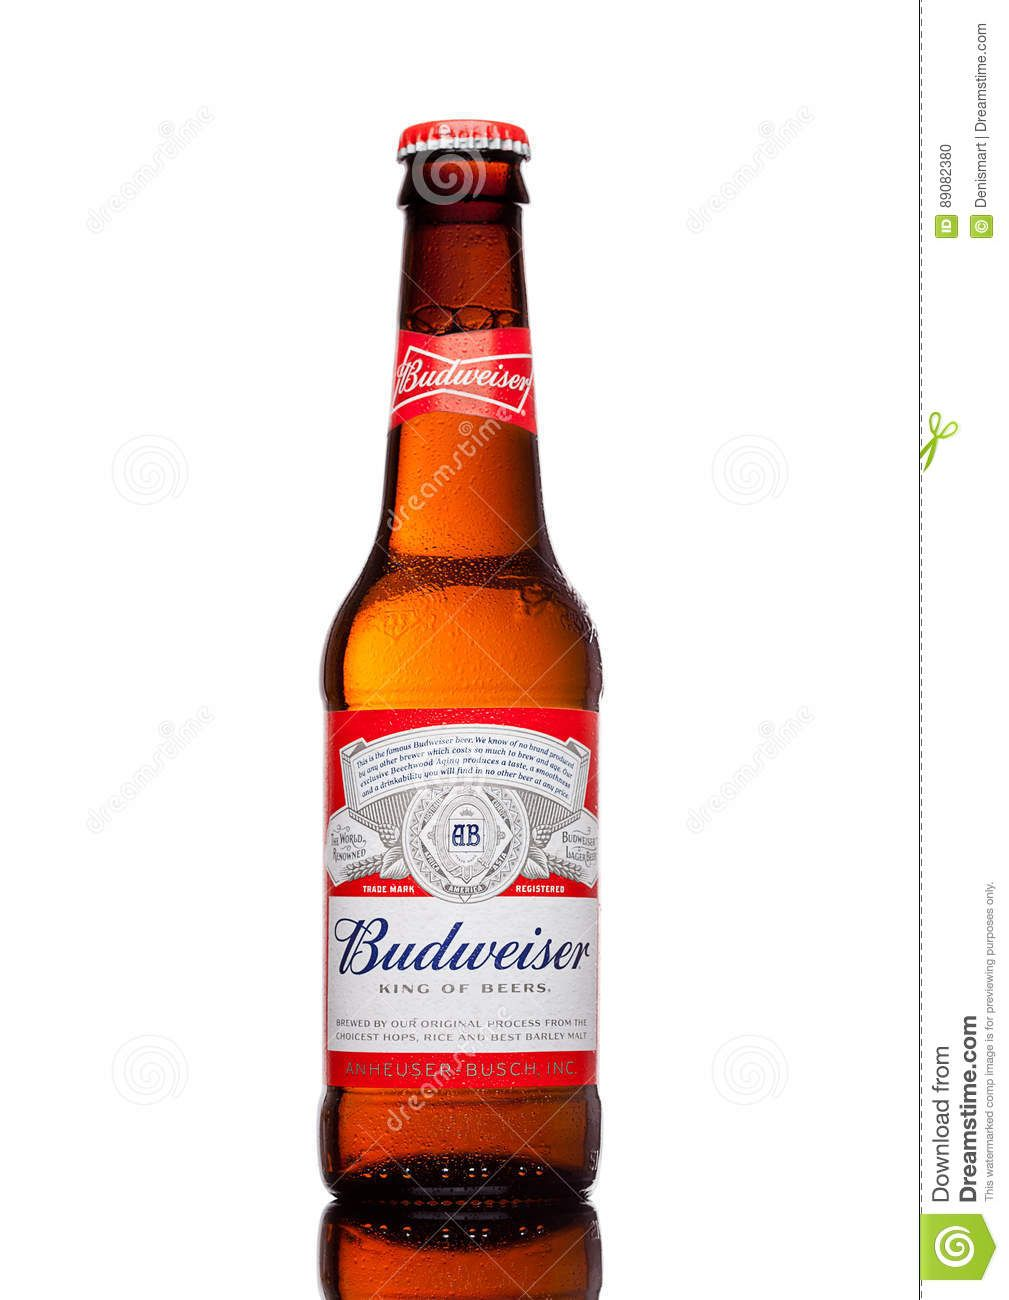 Budwiser clipart svg library stock Budweiser clipart beer bottle #4 | BEER | Beer bottle, Beer, Bottle svg library stock